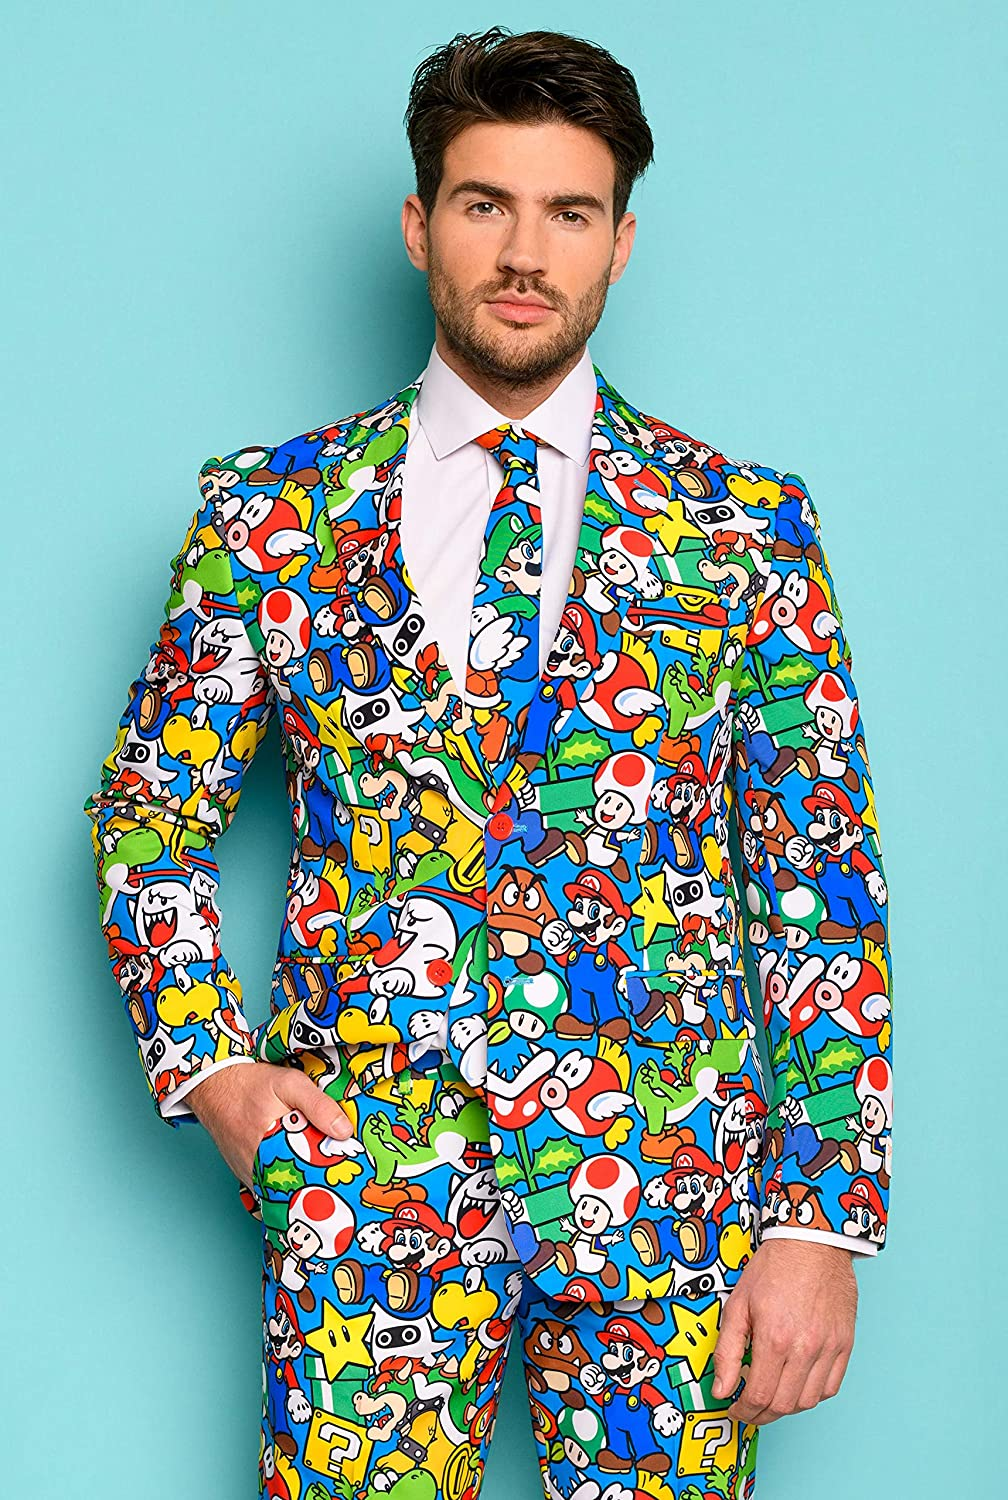 OppoSuits Mens Crazy Prom Suits Confetteroni Pants and Tie in Funny Designs 36 Comes with Jacket